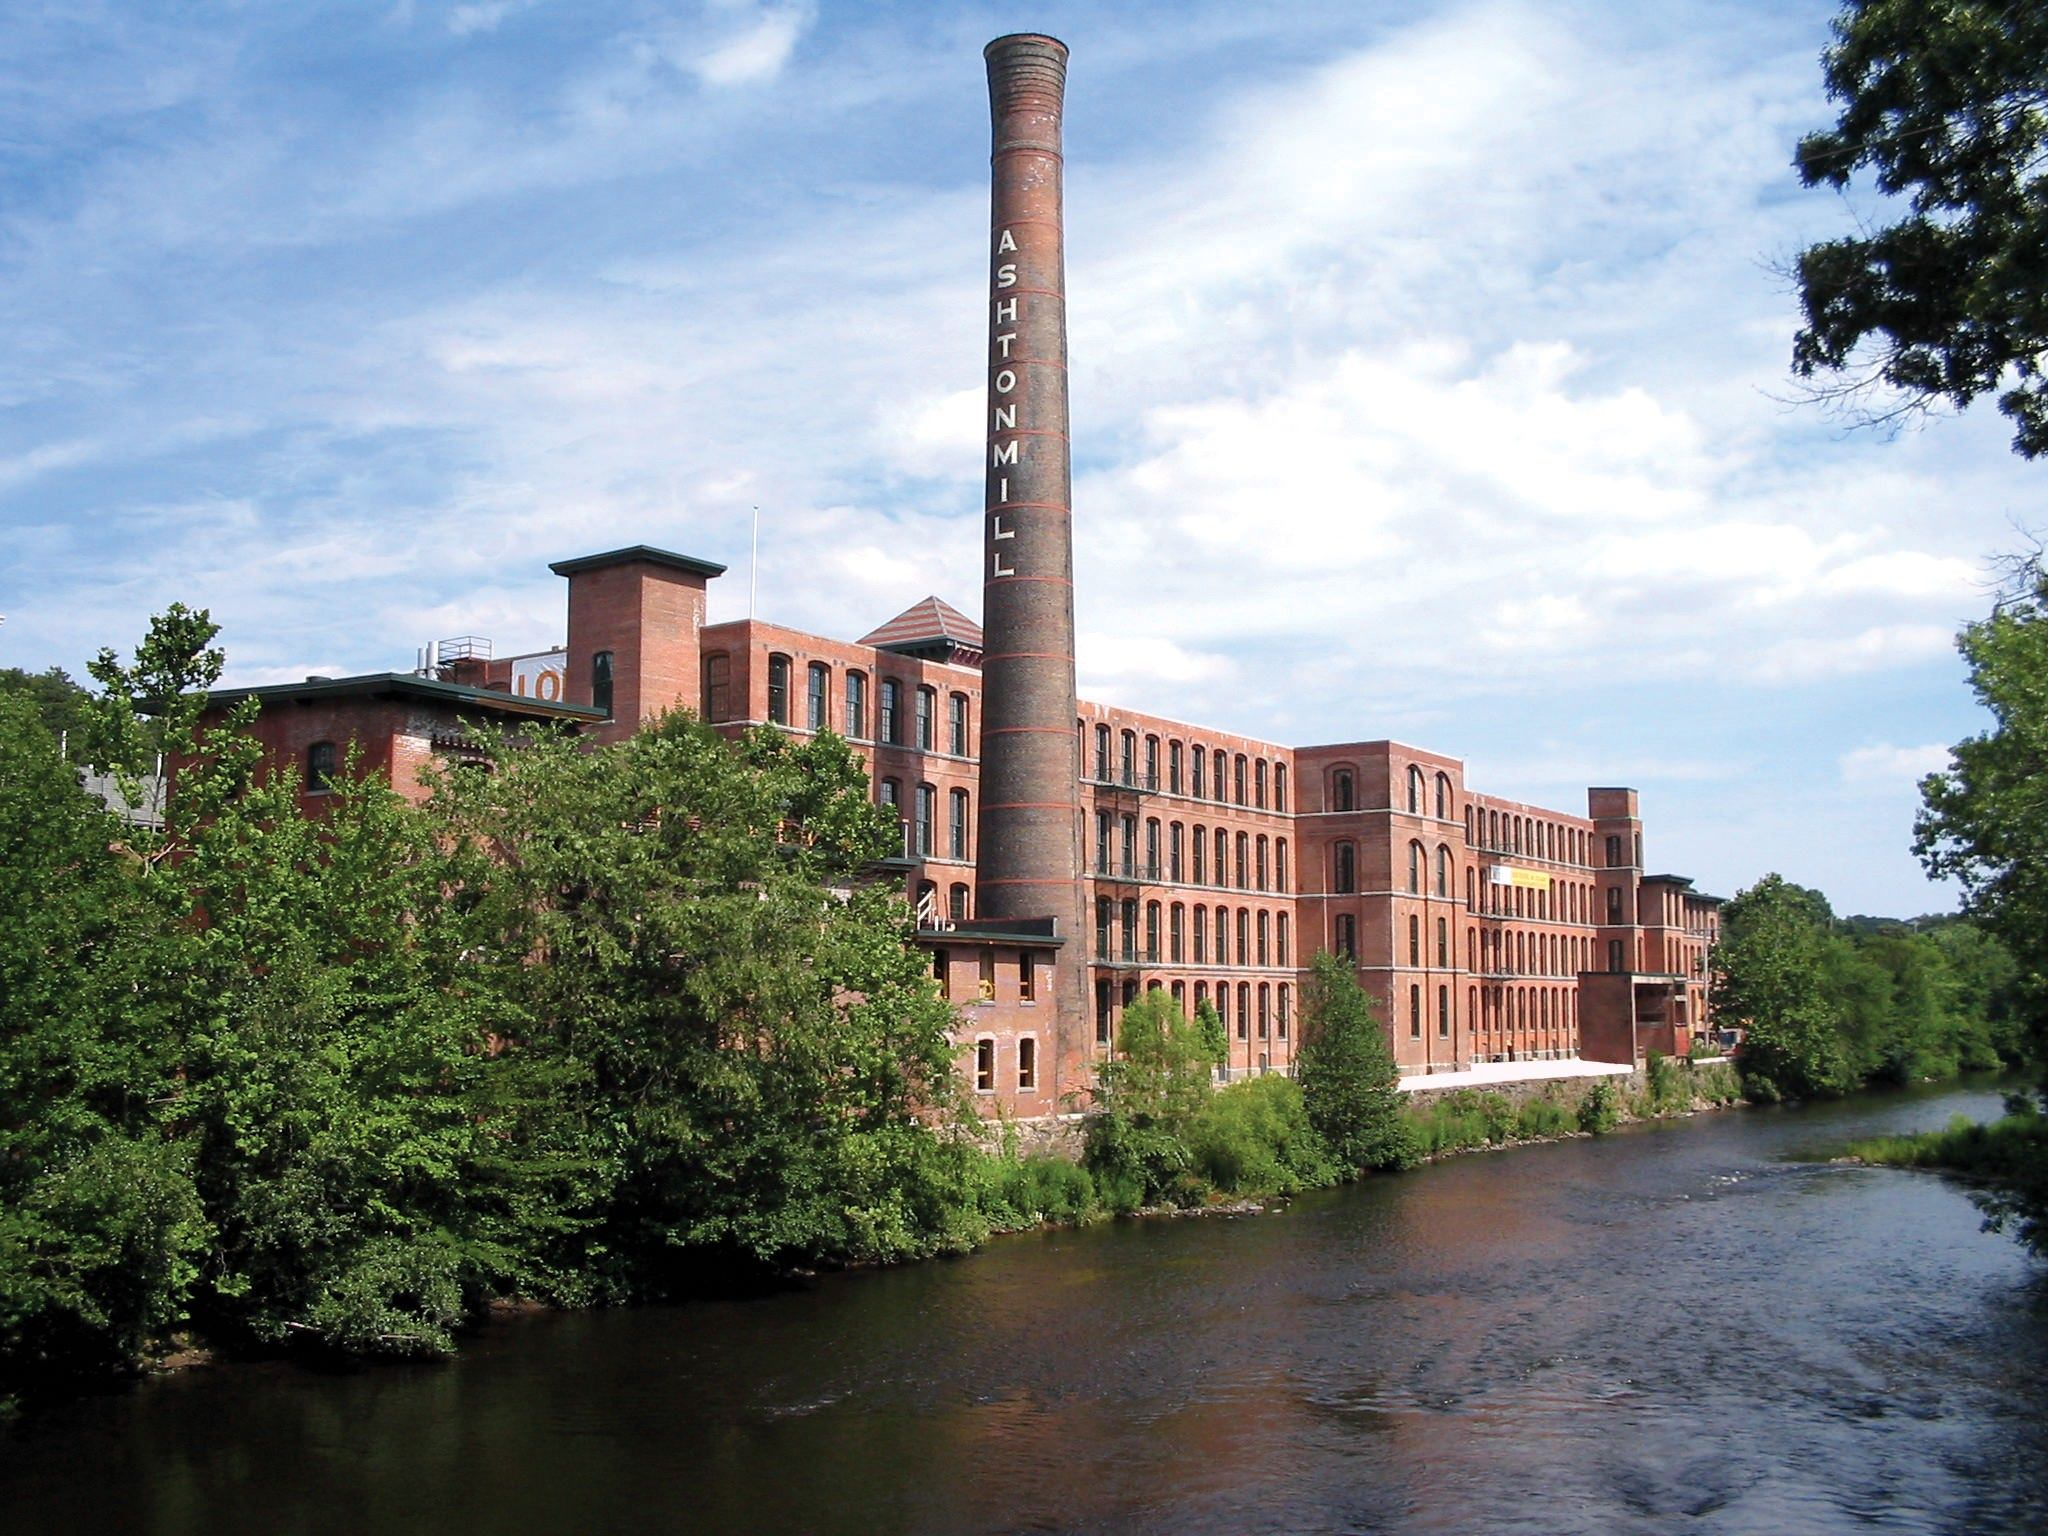 A large brick building with a tower that is next to a row of trees and a river.